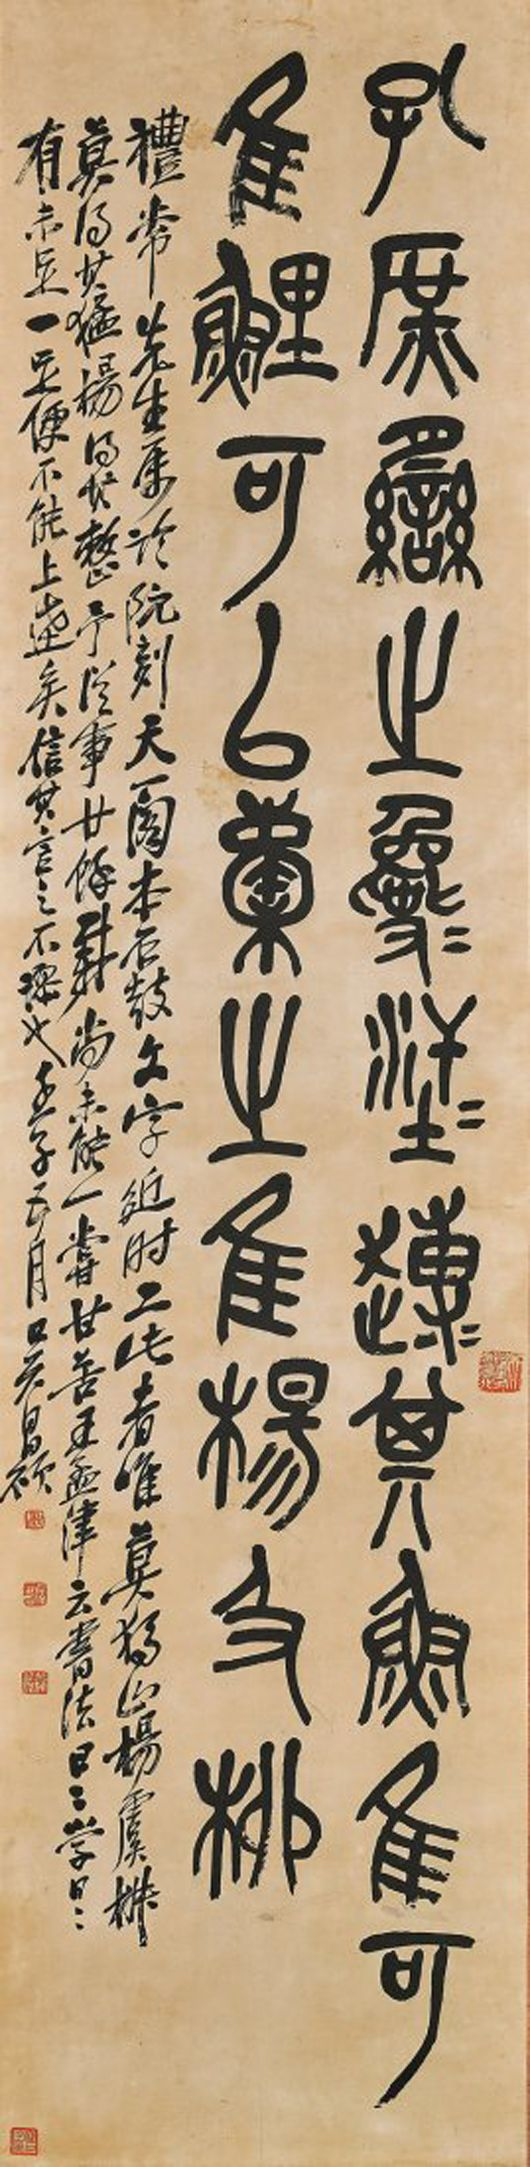 Chinese Ink On Paper Calligraphy By Wu Changshuo 1844